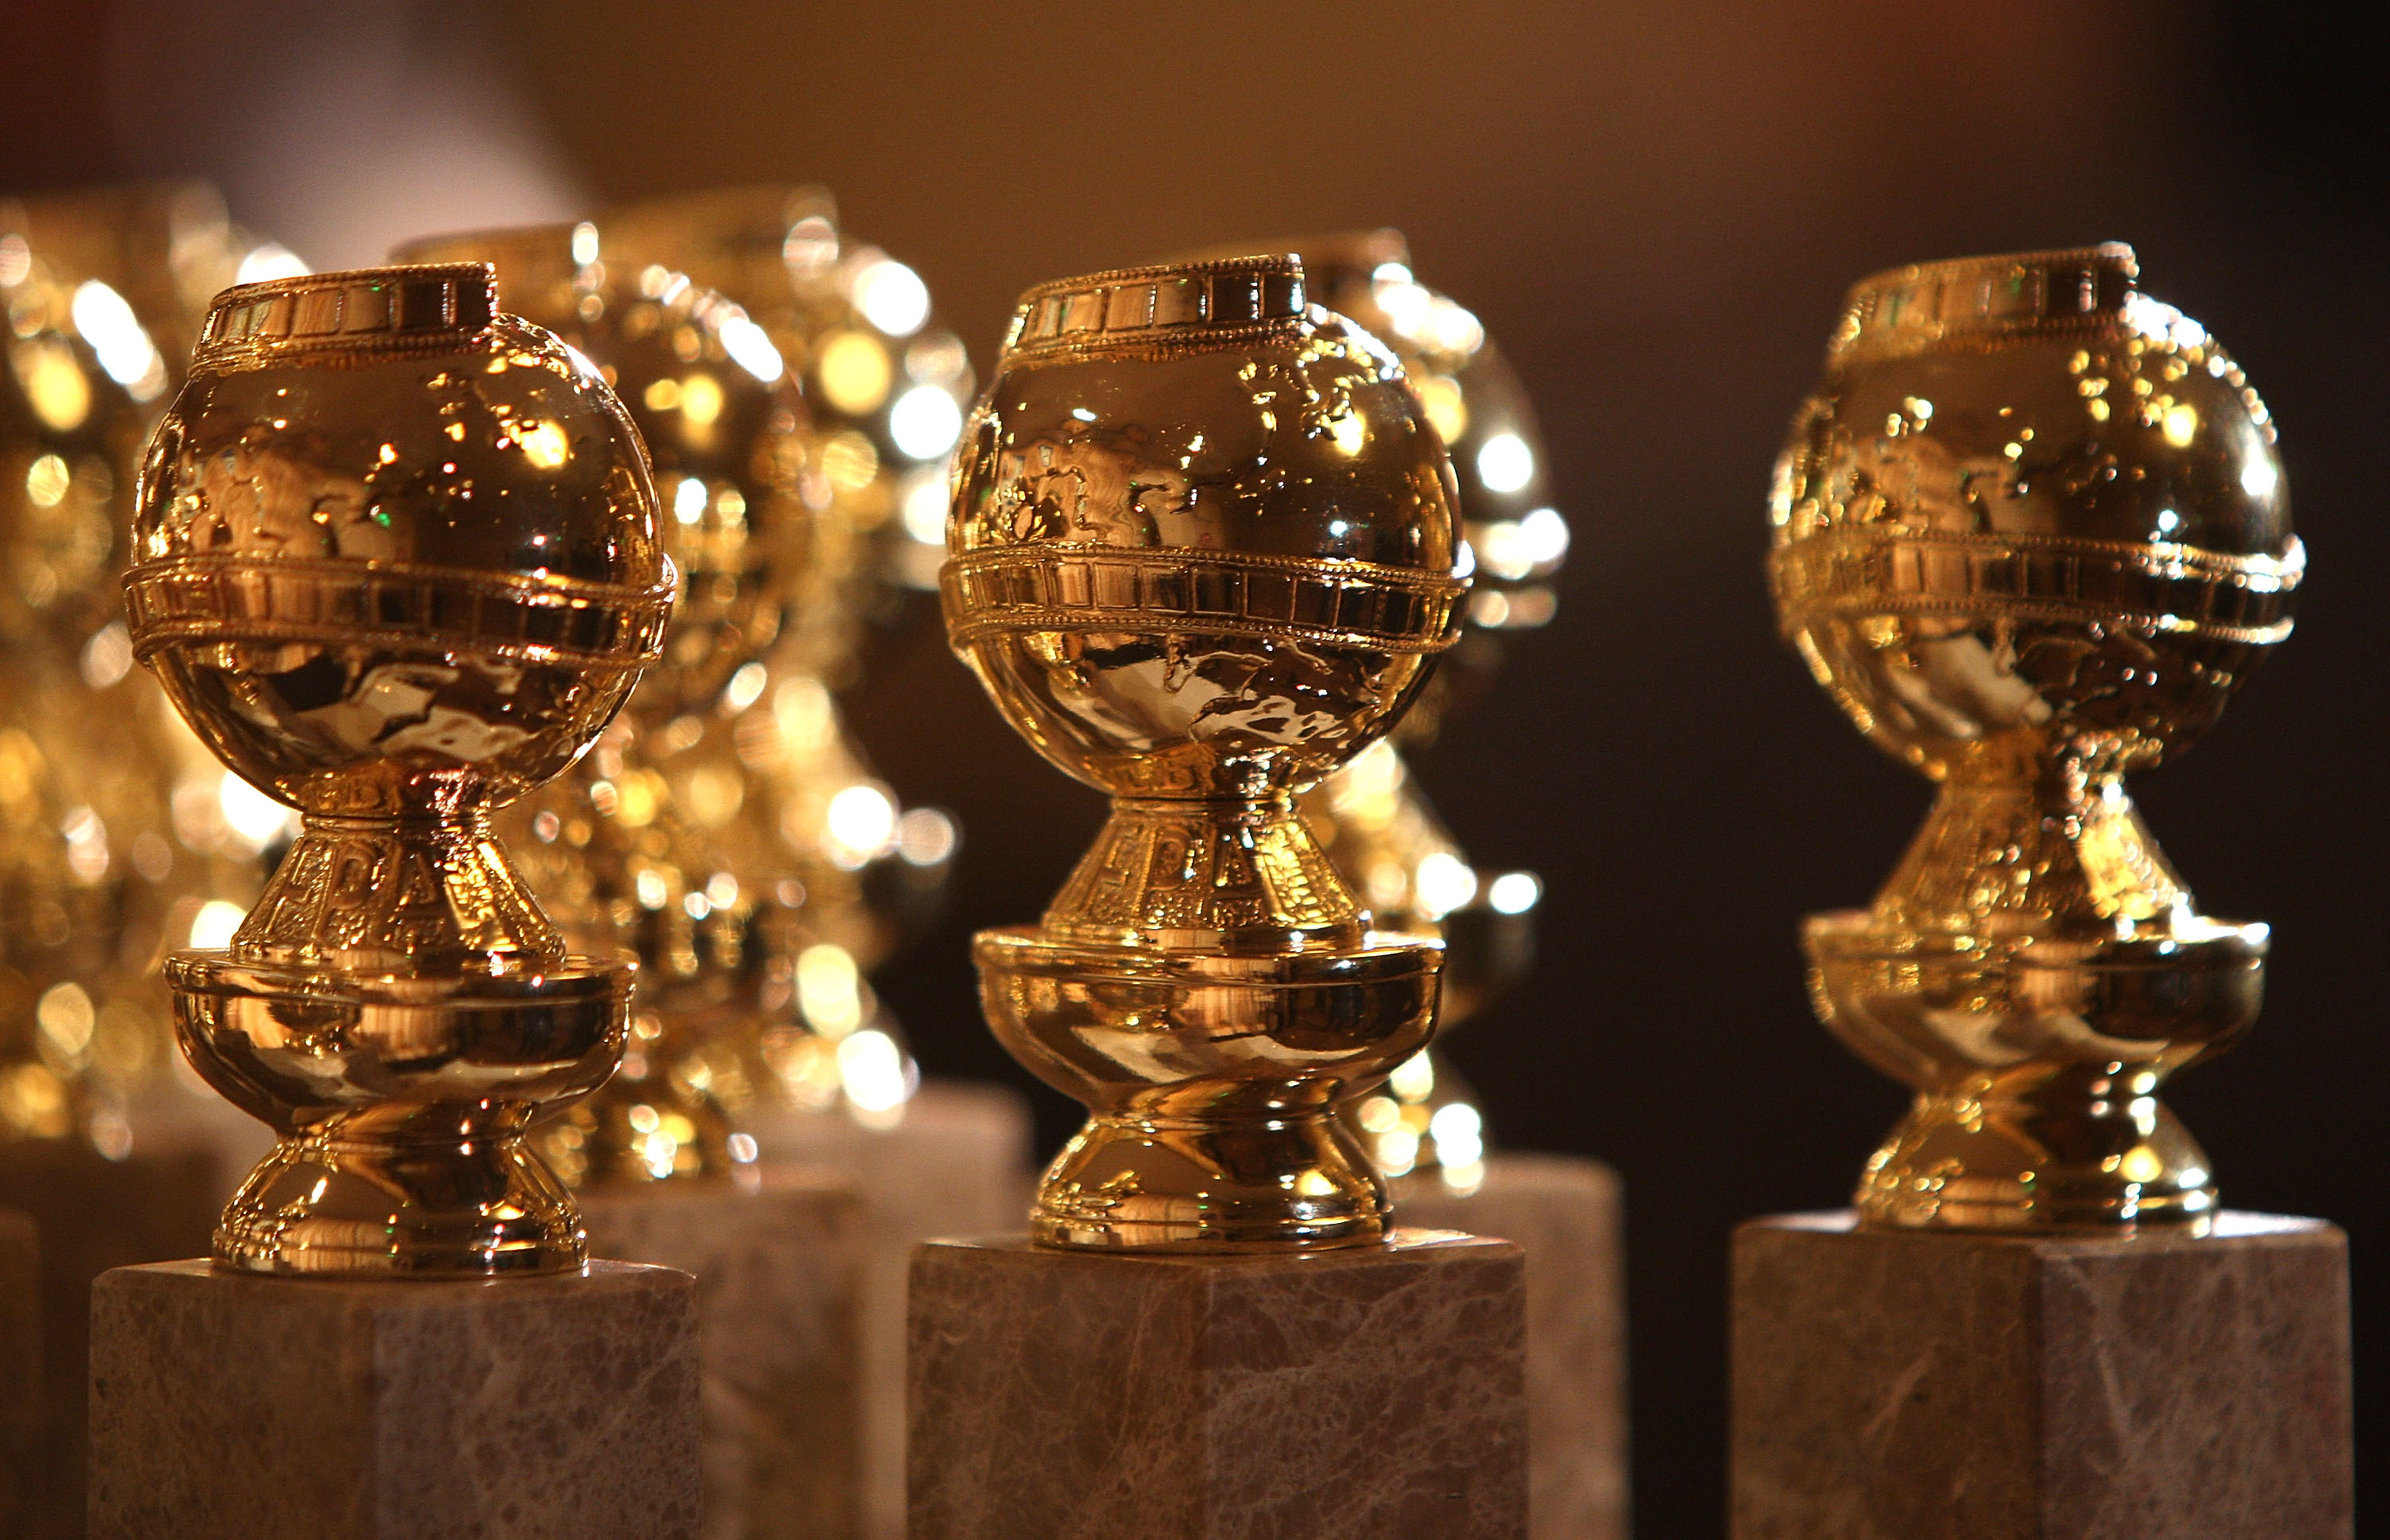 The Golden Globe Statuettes.